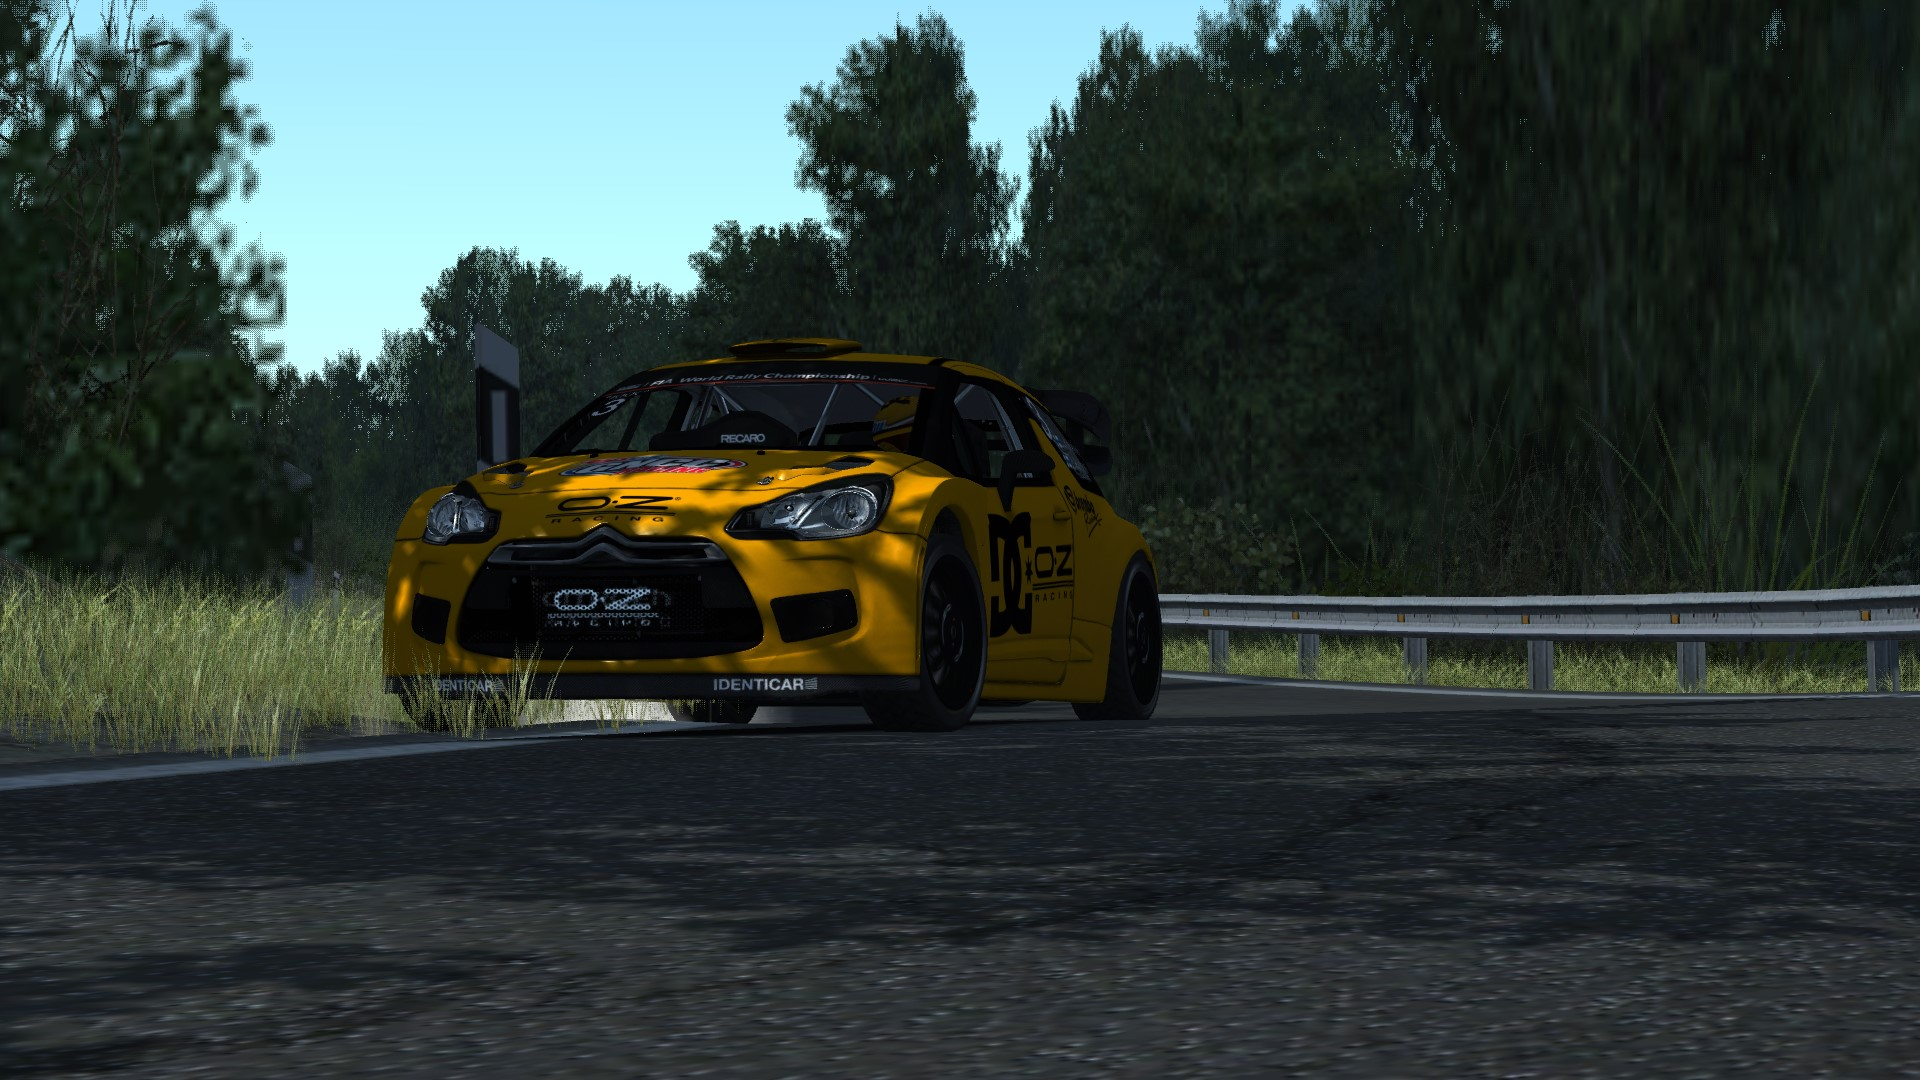 Screenshot_ds3_wrc_2015_hillclimb_moya_20-2-116-21-35-11.jpg